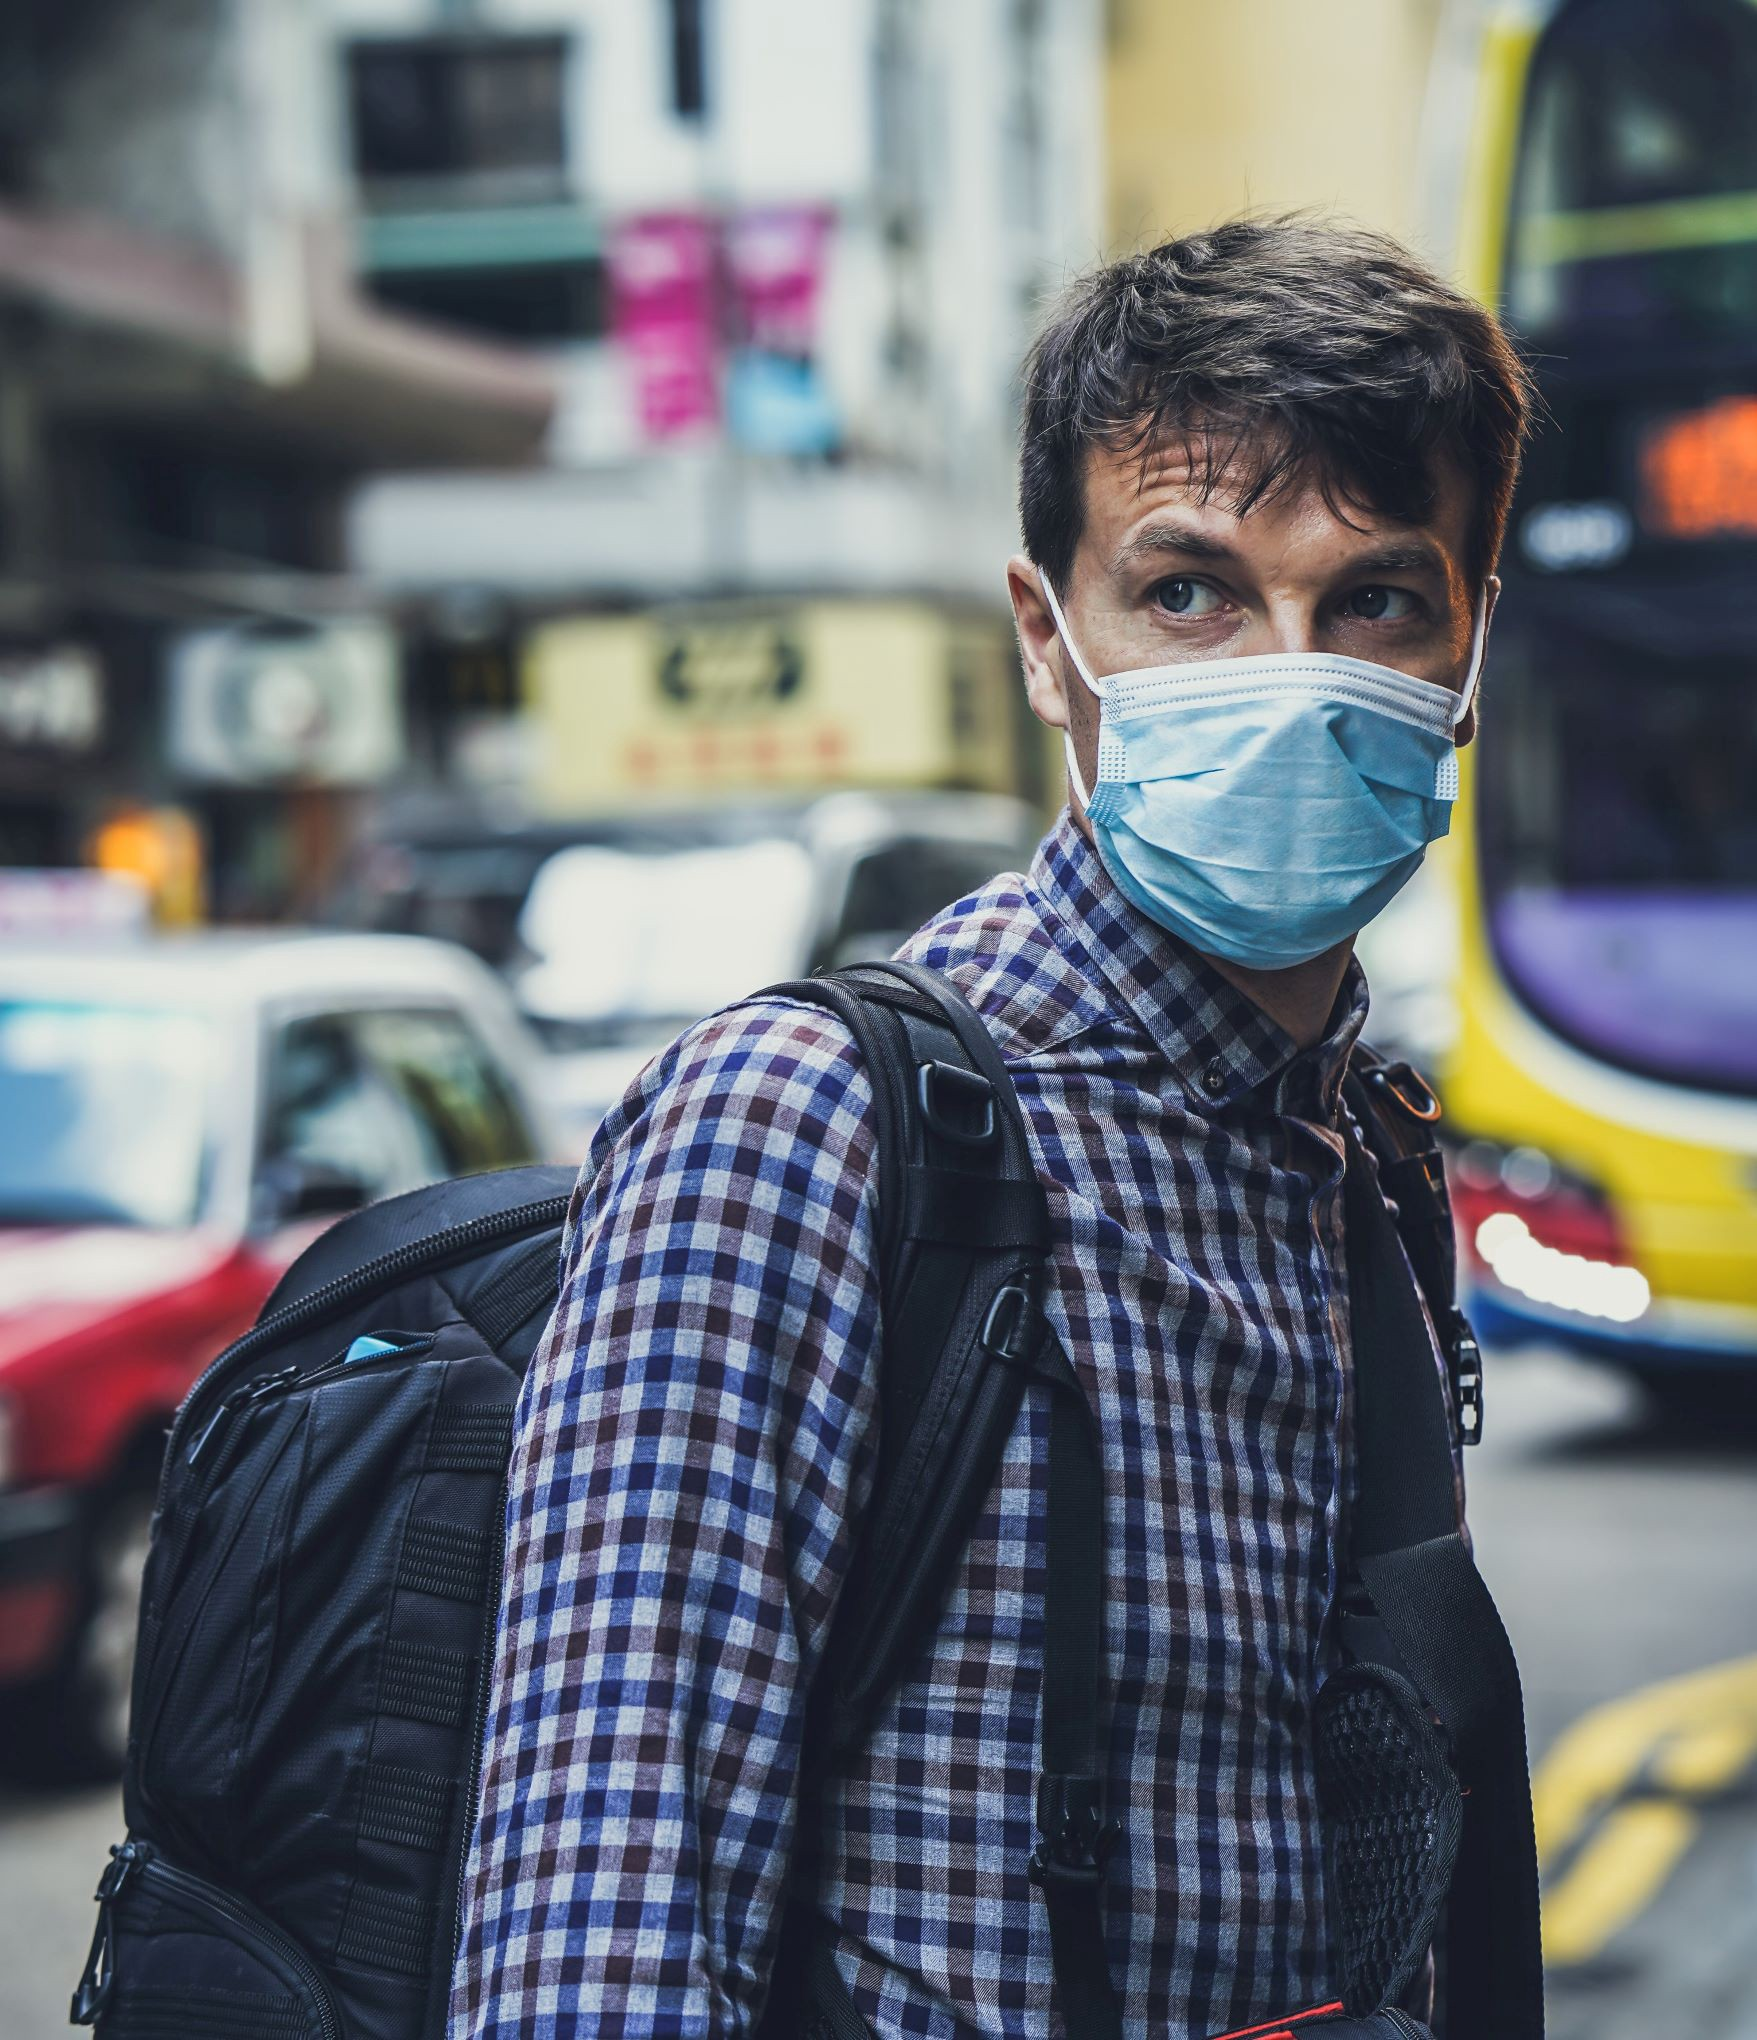 Young man traveling wearing medical mask